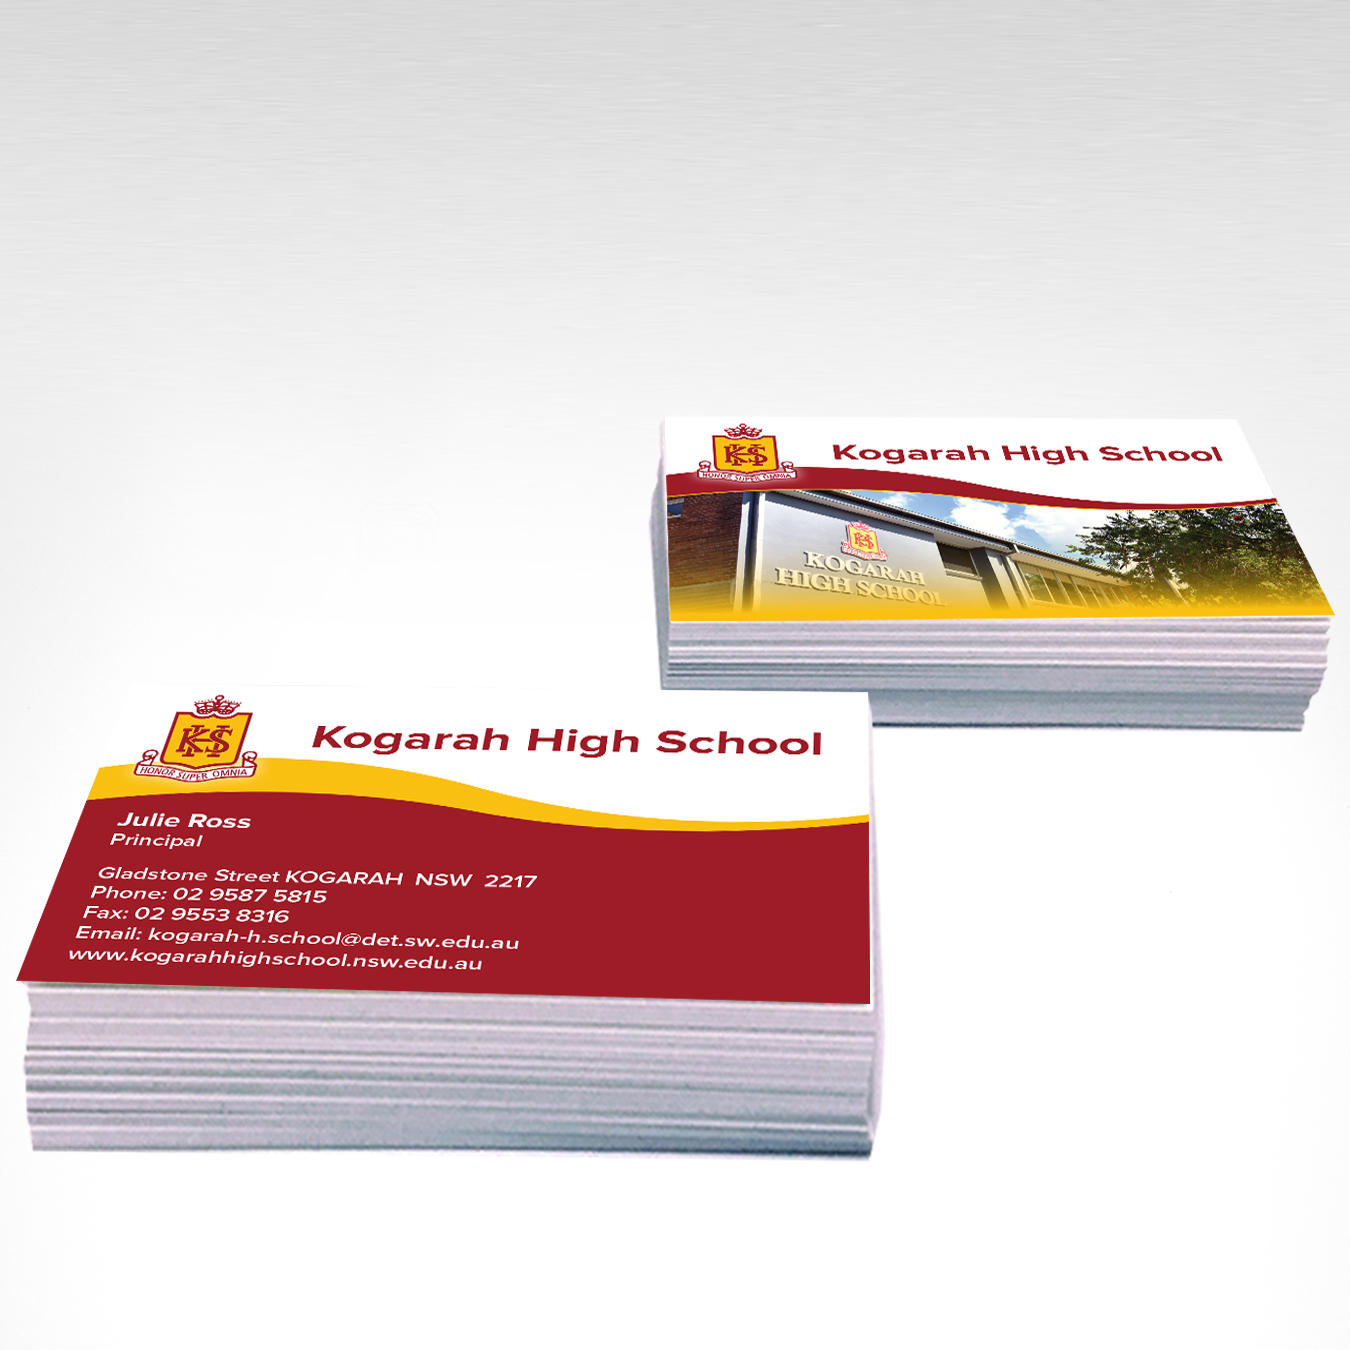 Business cards advancedprint your business card can be a very effective marketing tool and you want them to make the right impression choose from our exclusive designs or let us design reheart